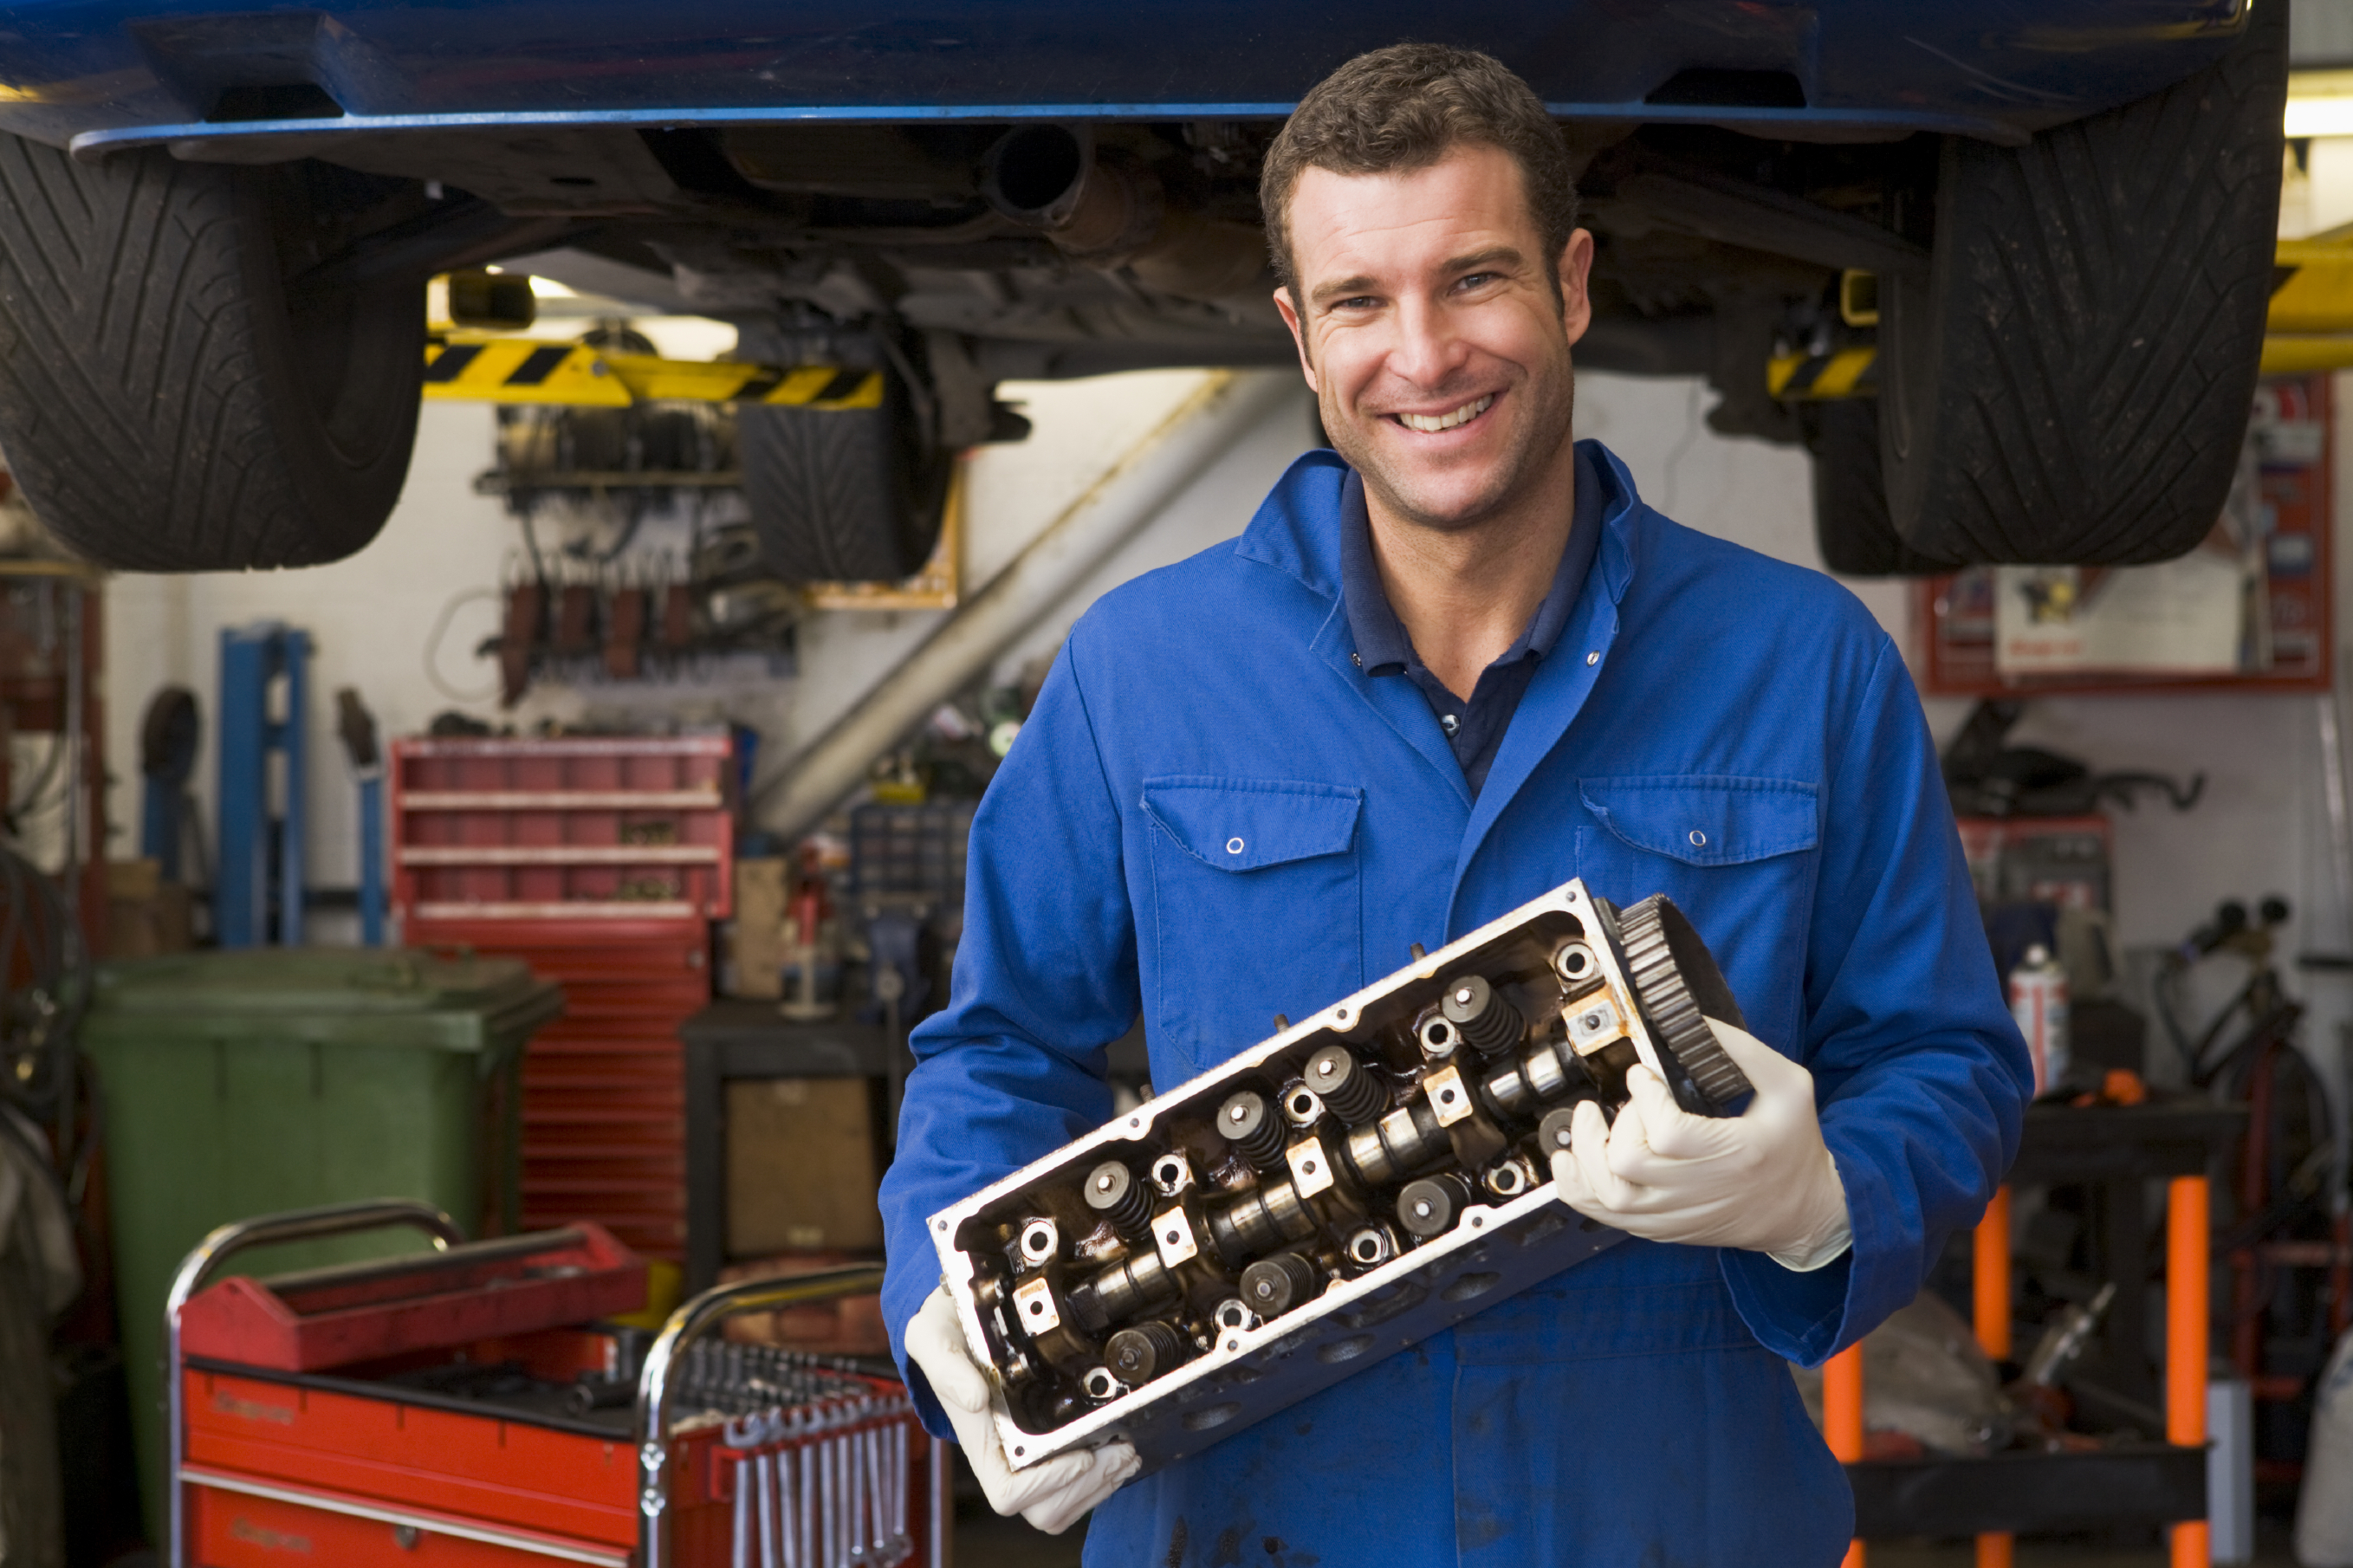 Mechanics Jobs Dublin | Tradesmen.ie BlogTradesmen.ie Blog